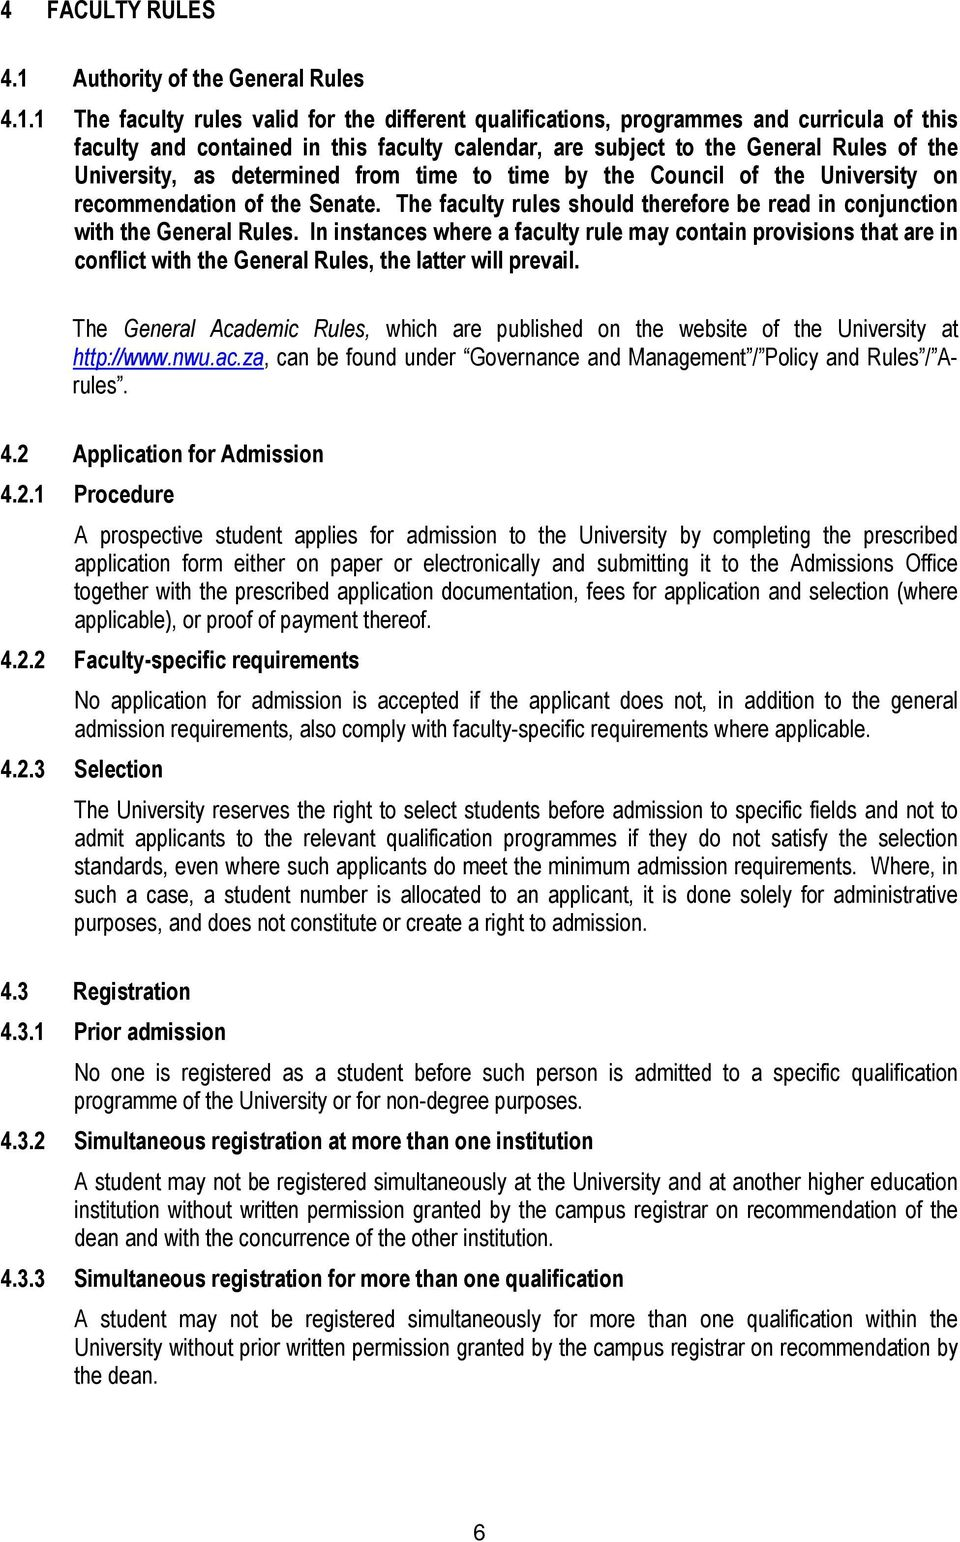 1 The faculty rules valid for the different qualifications, programmes and  curricula of this faculty